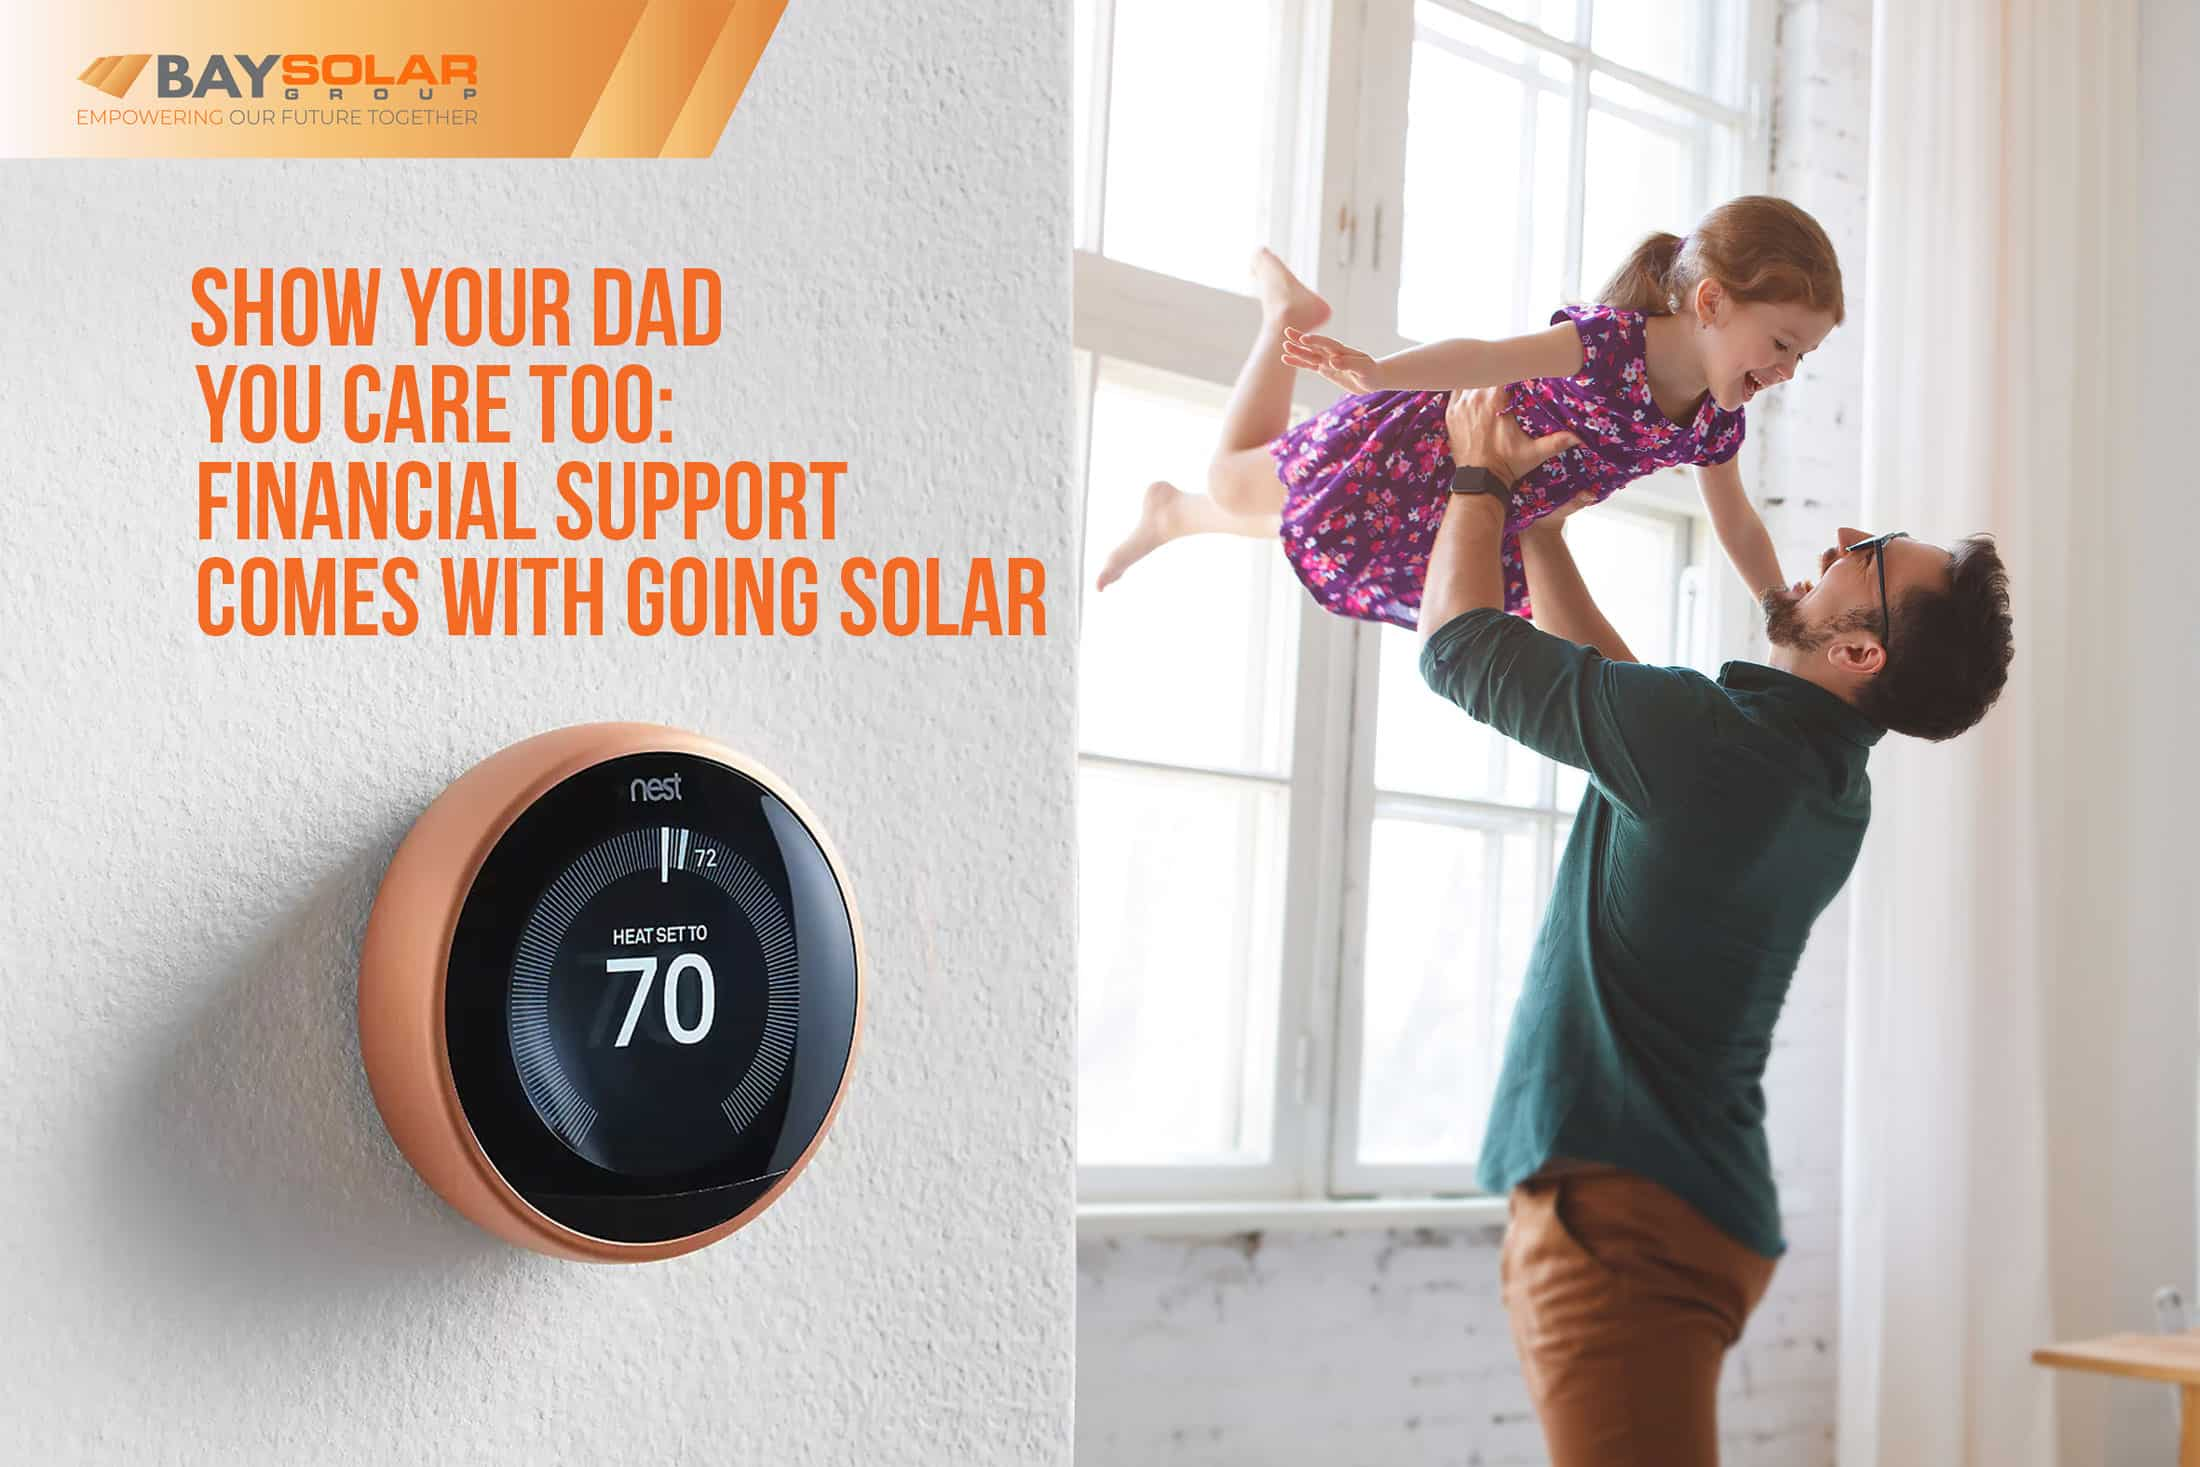 Nest-Thermostat-On-A-White-Wall